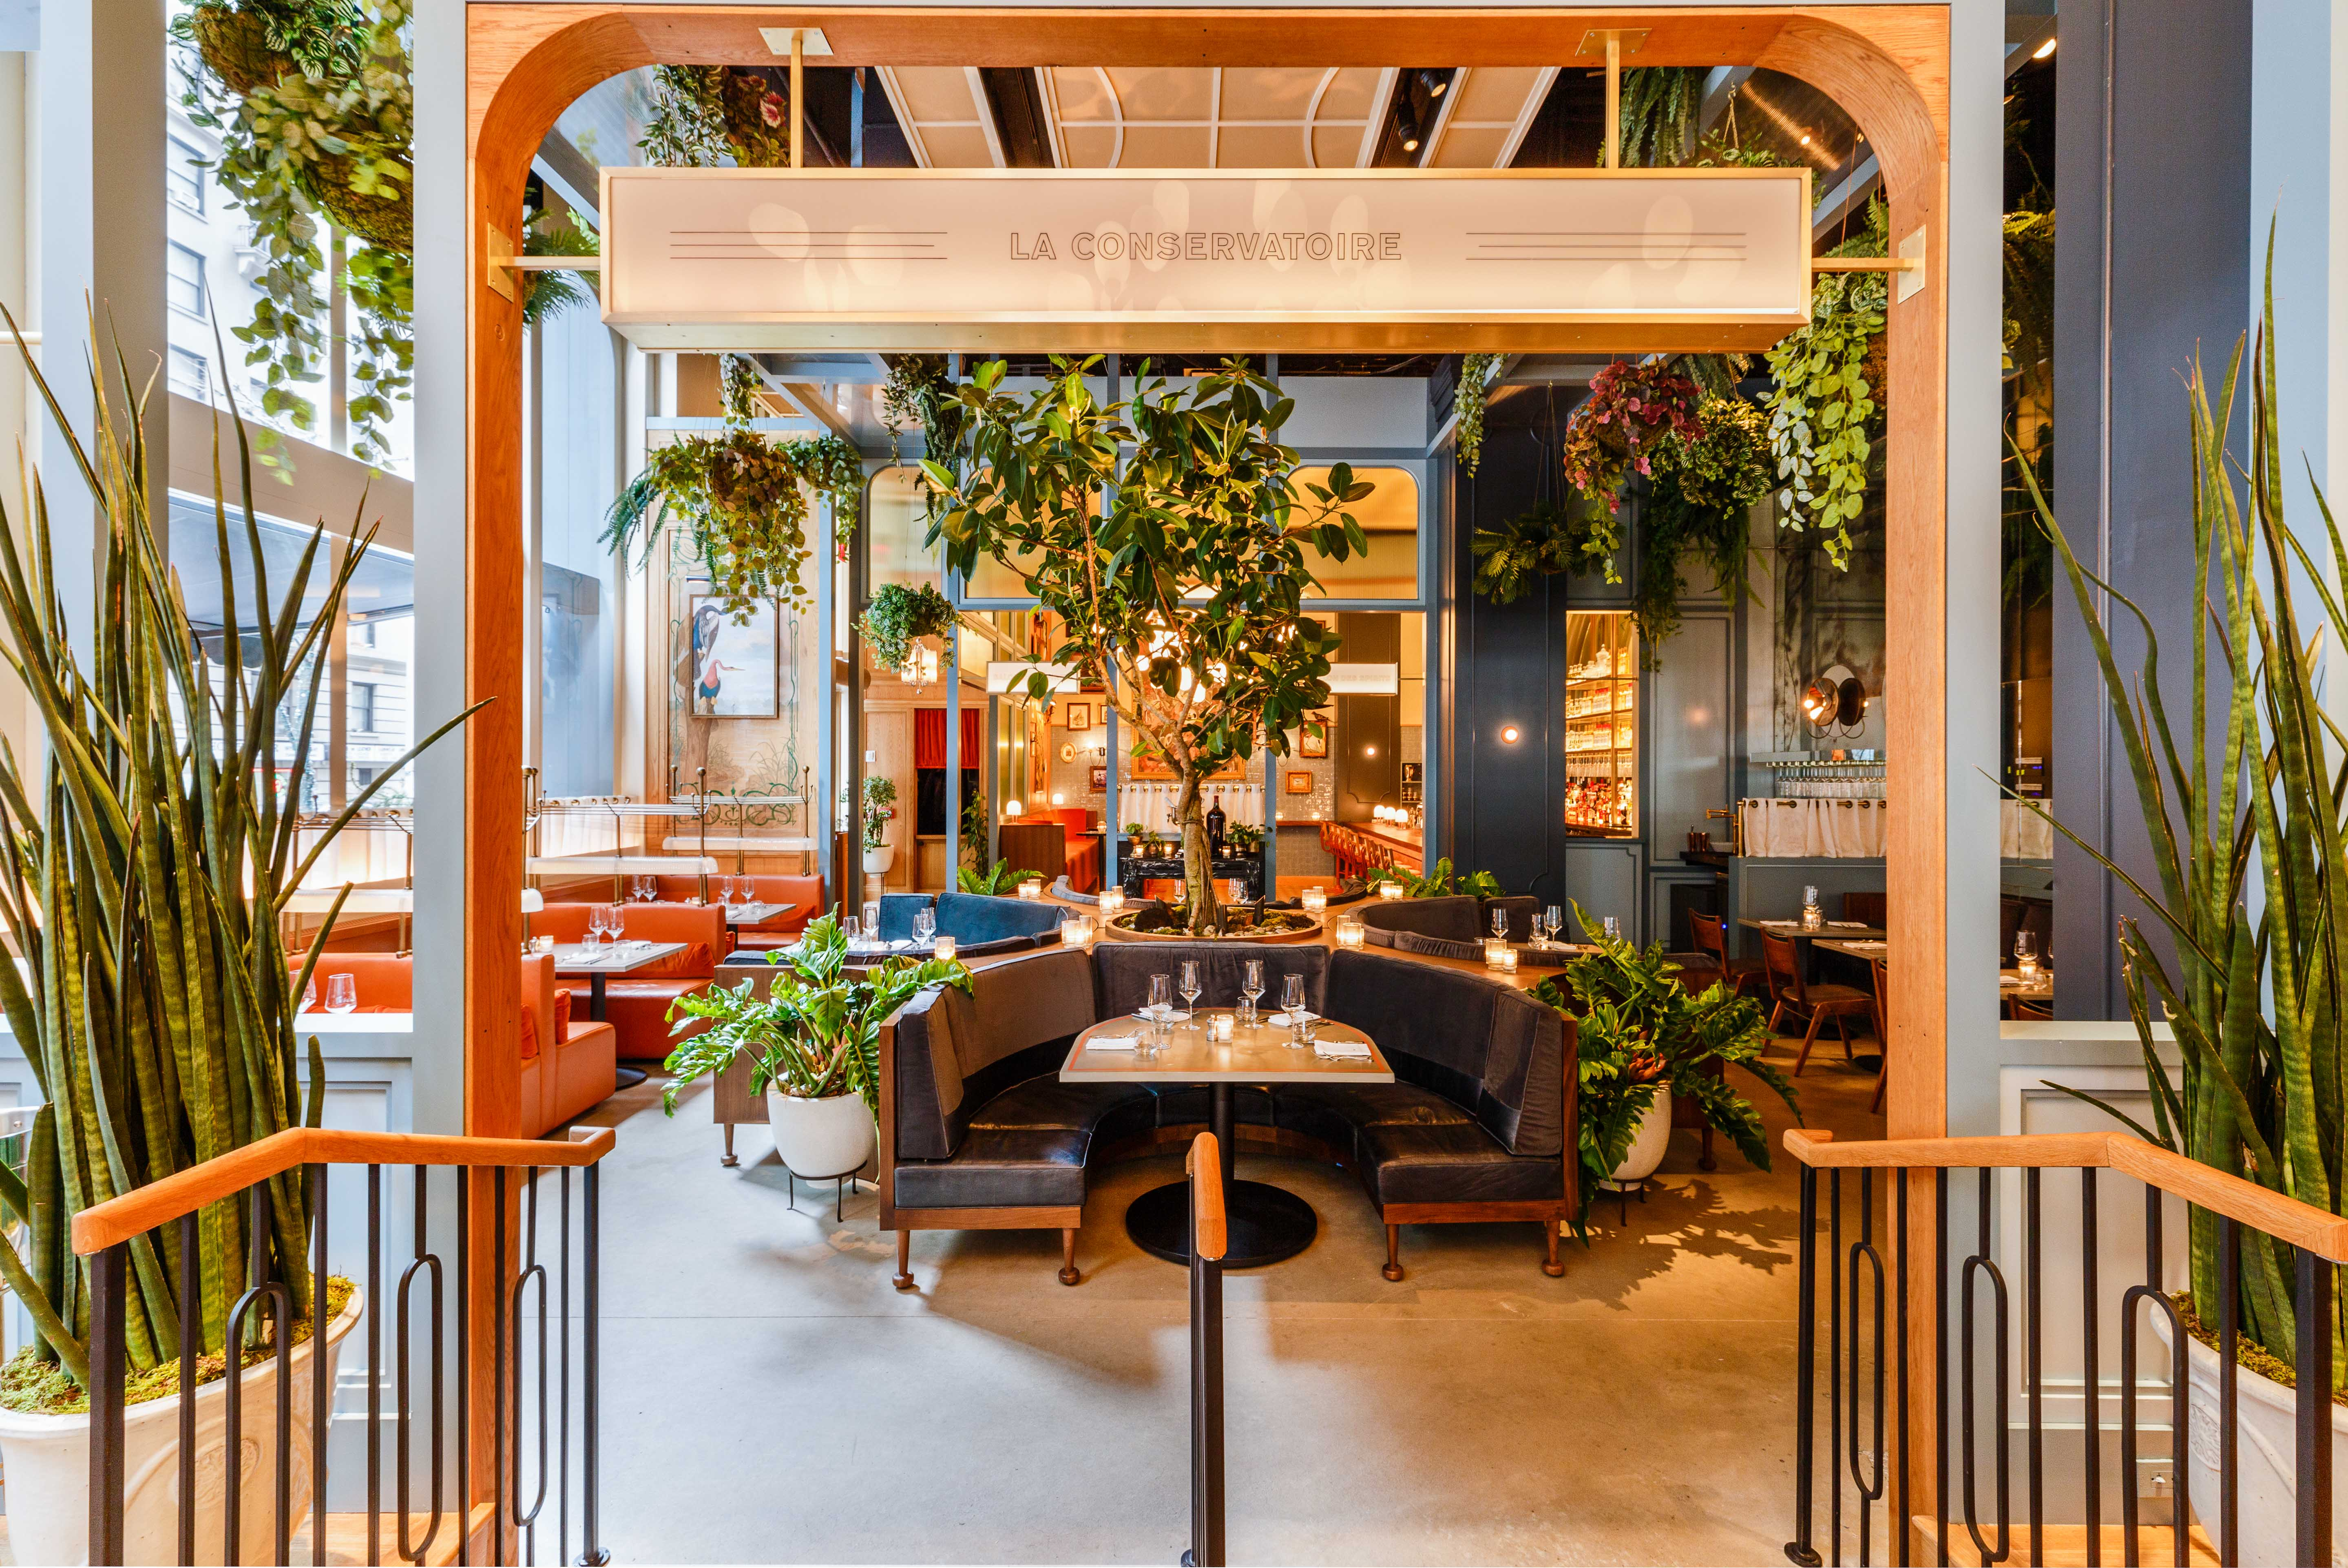 Railings lead into a big open dining room with U-shaped banquettes and lots of plants